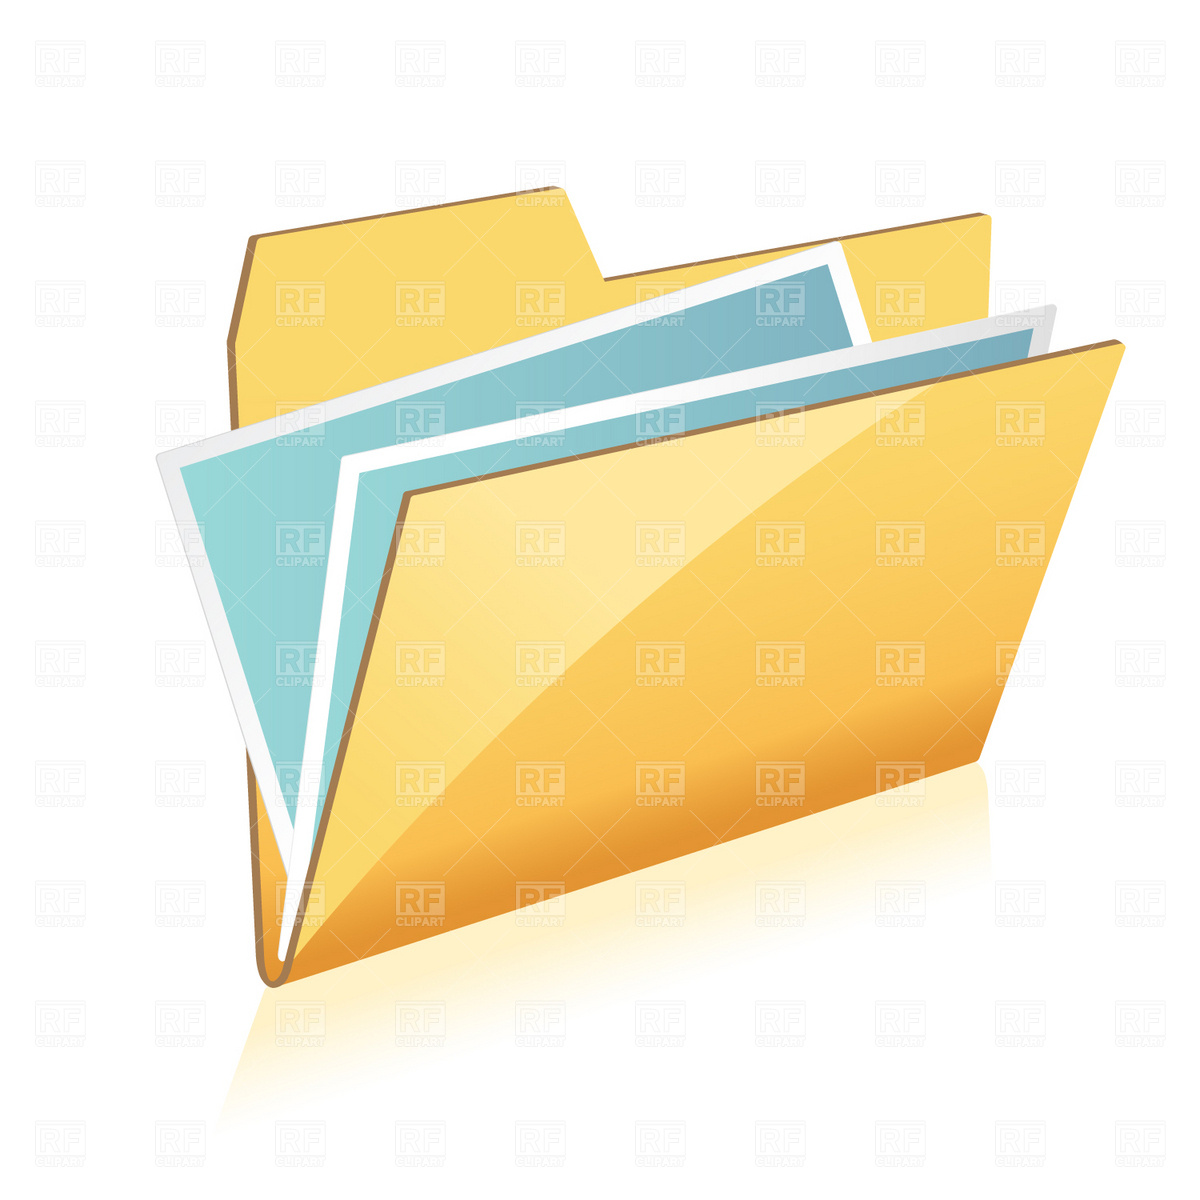 12 File Folder Icon Images